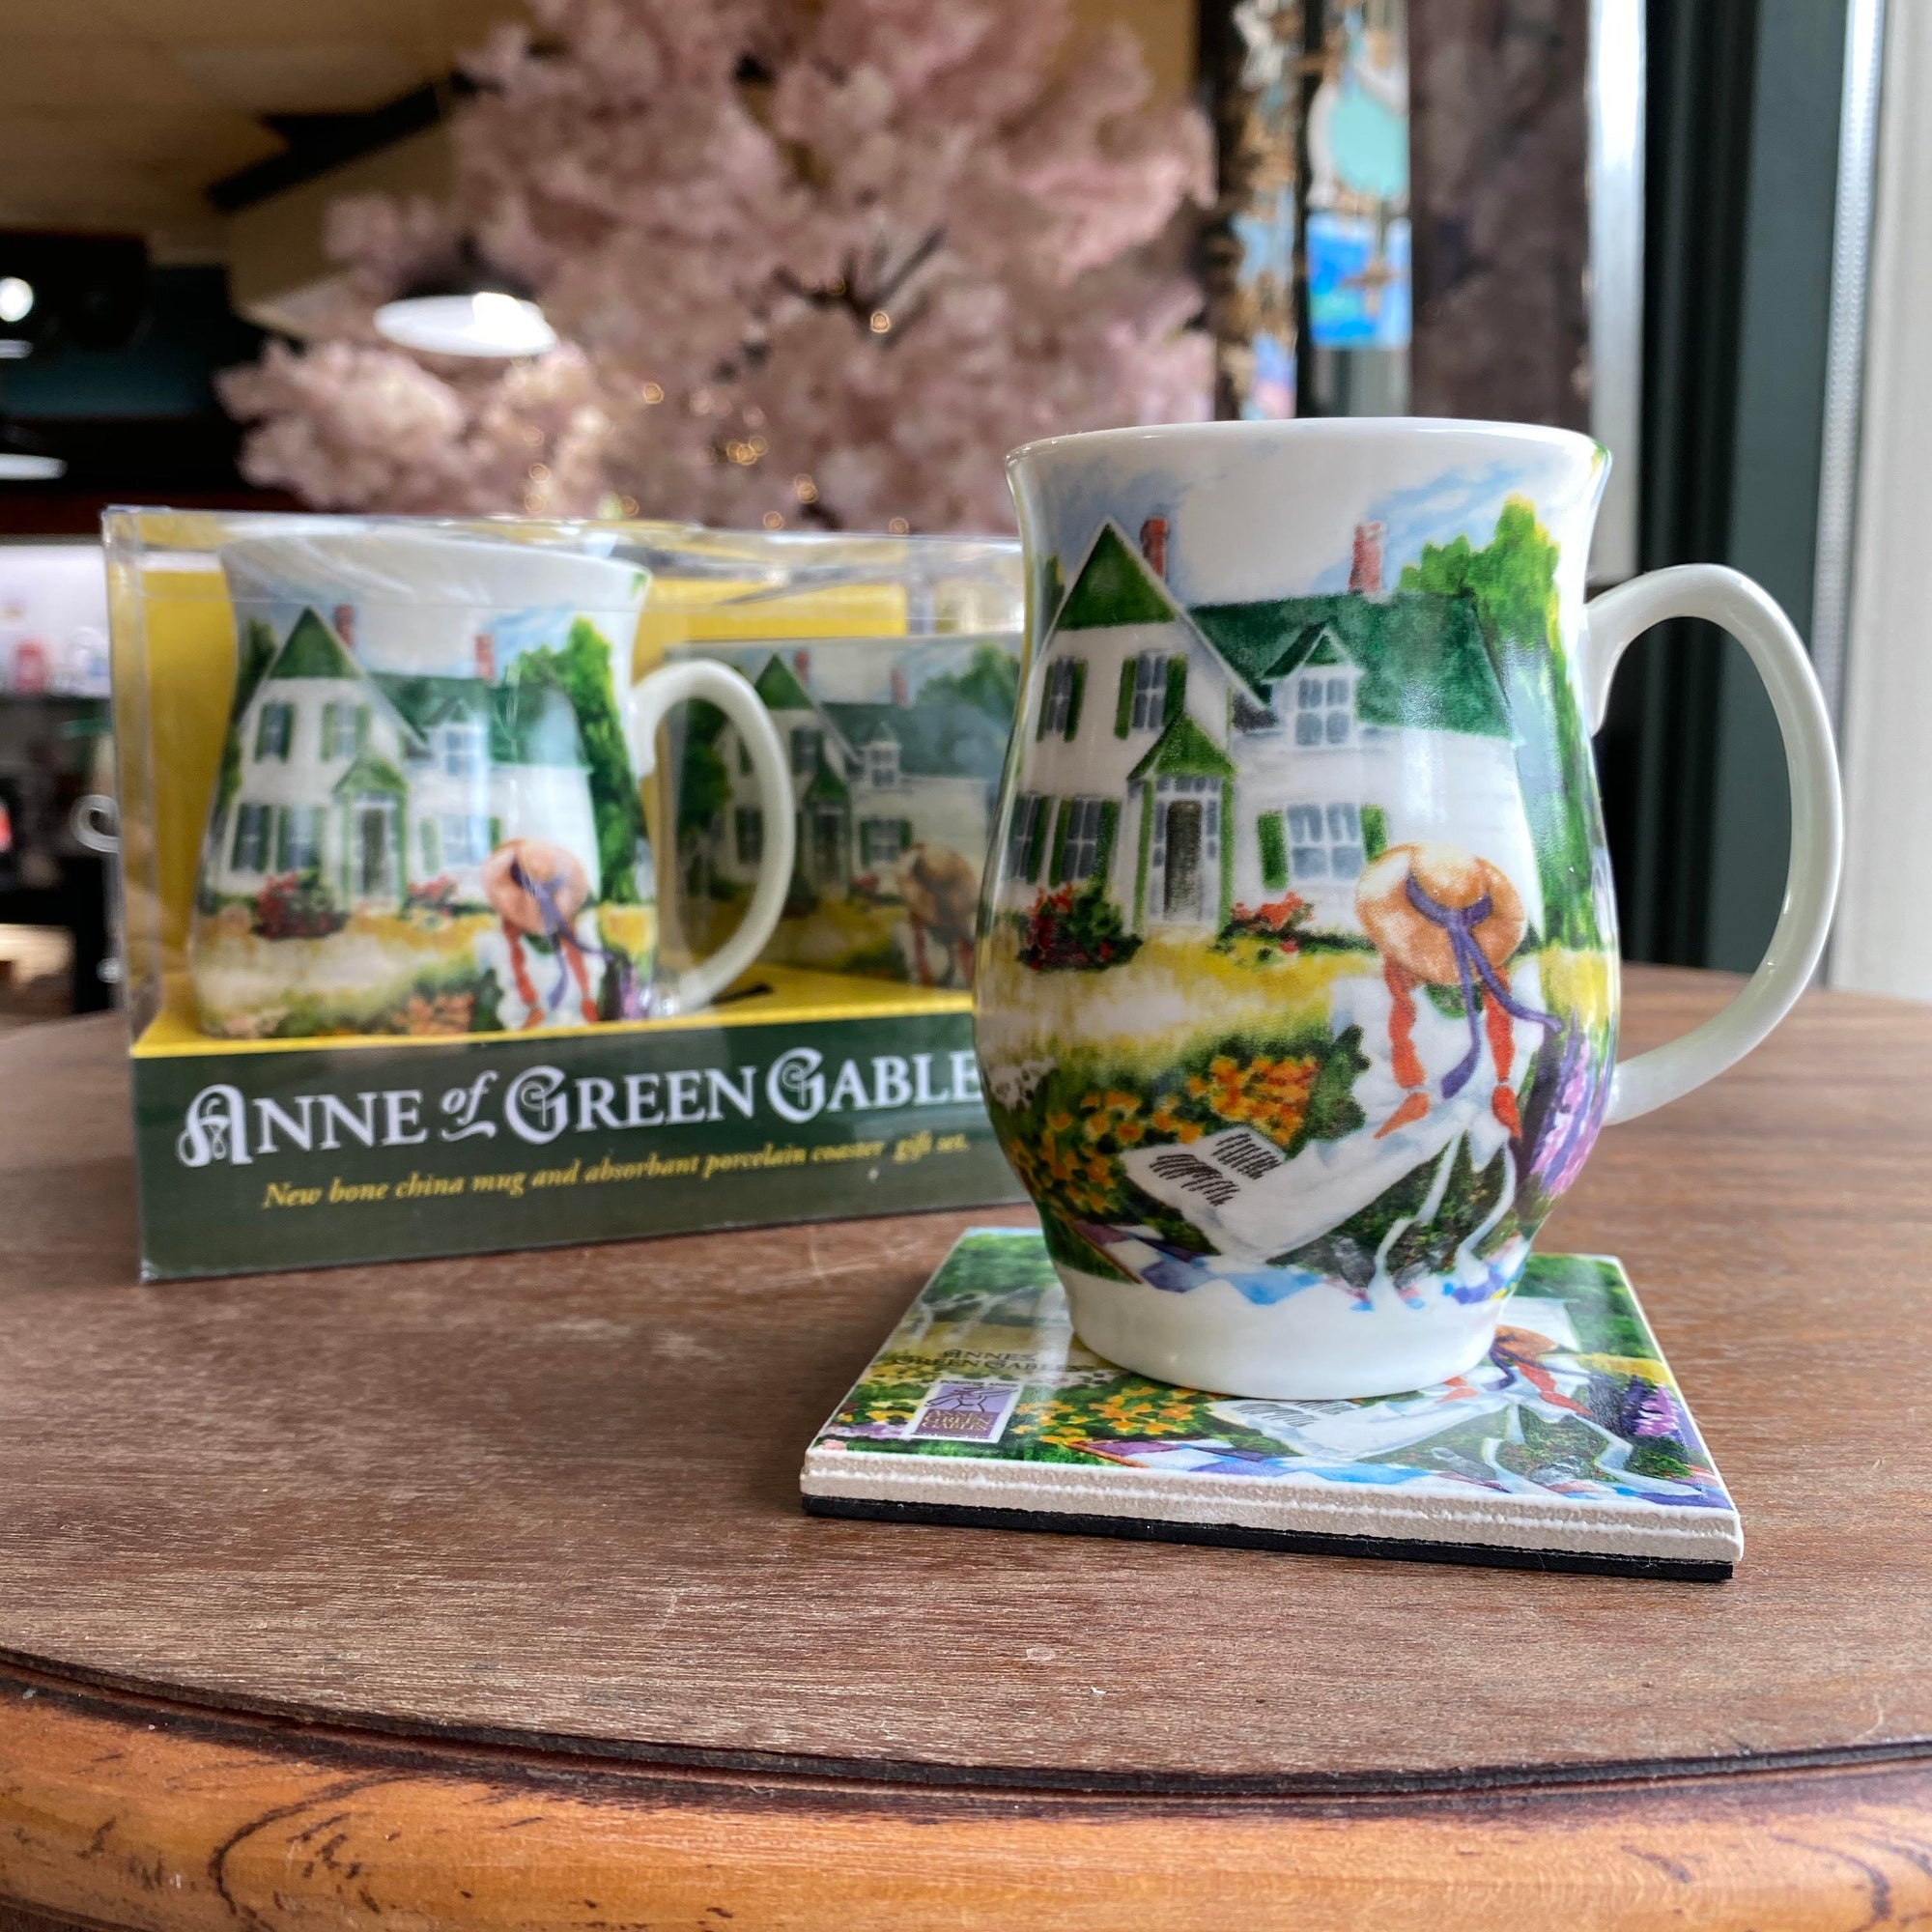 Anne of Green Gables mug and Coaster